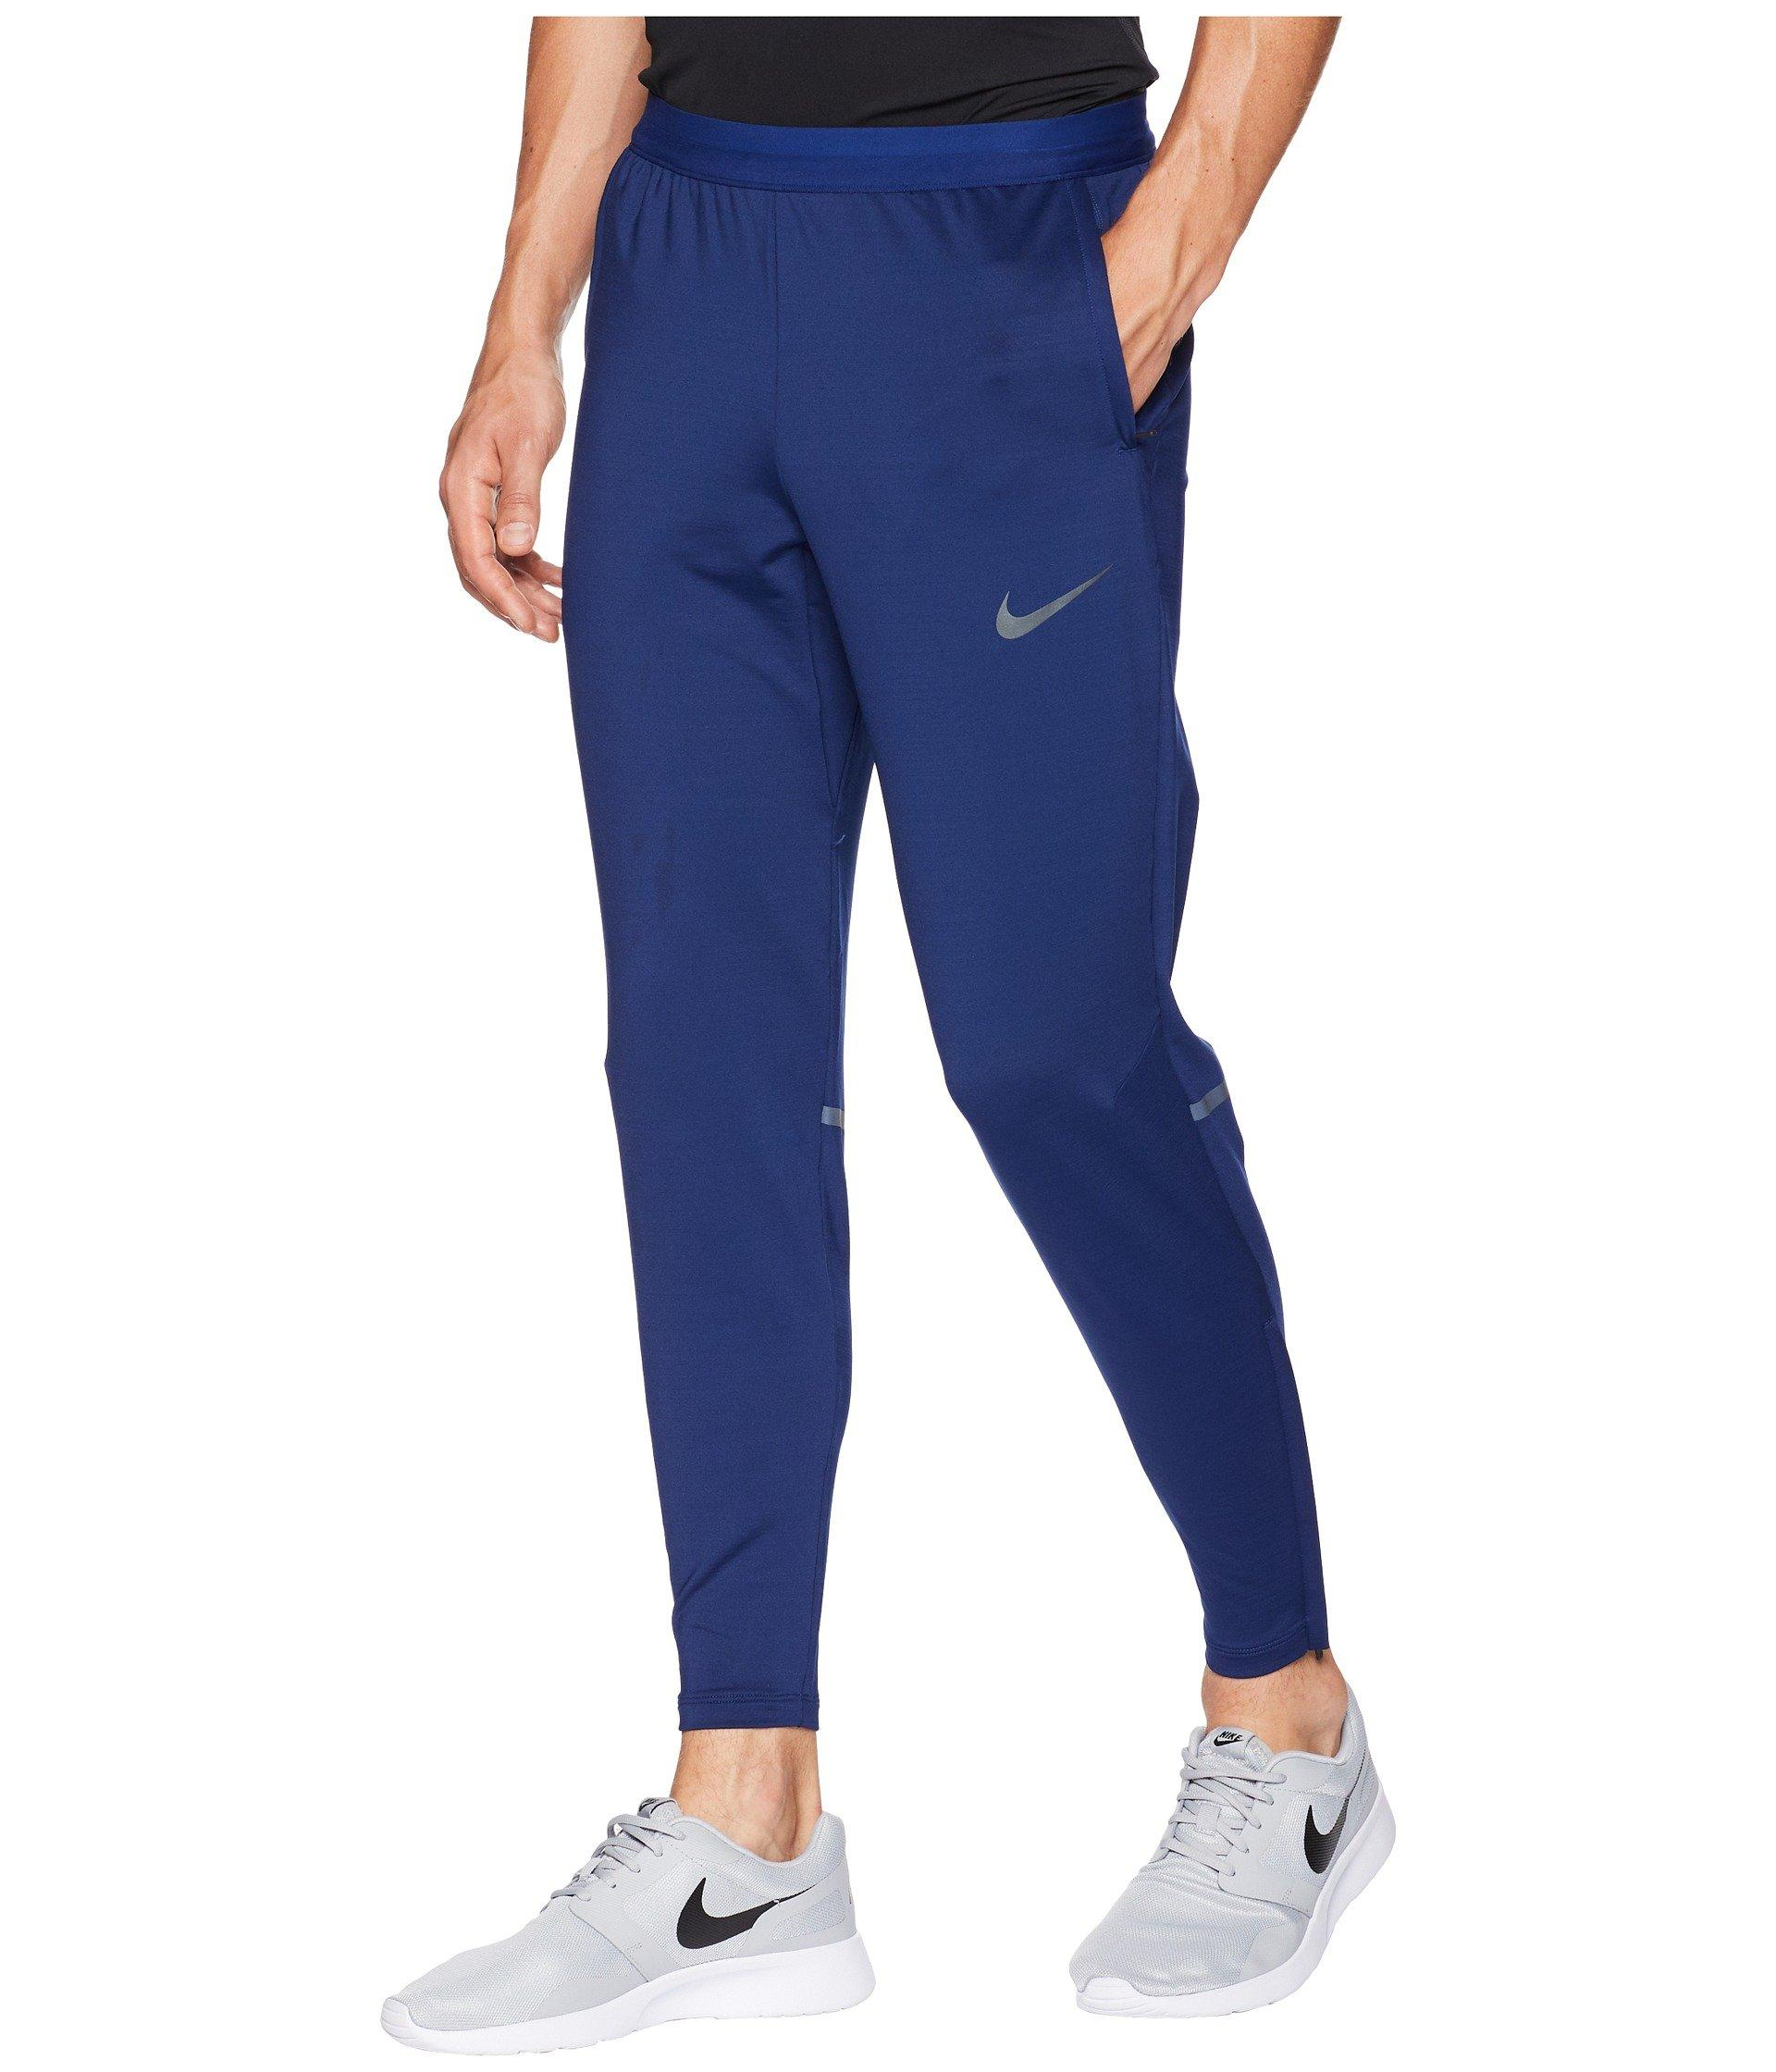 8e2dd41a102d Lyst - Nike Phenom Pants (armory Blue reflect Black) Men s Casual Pants in  Blue for Men